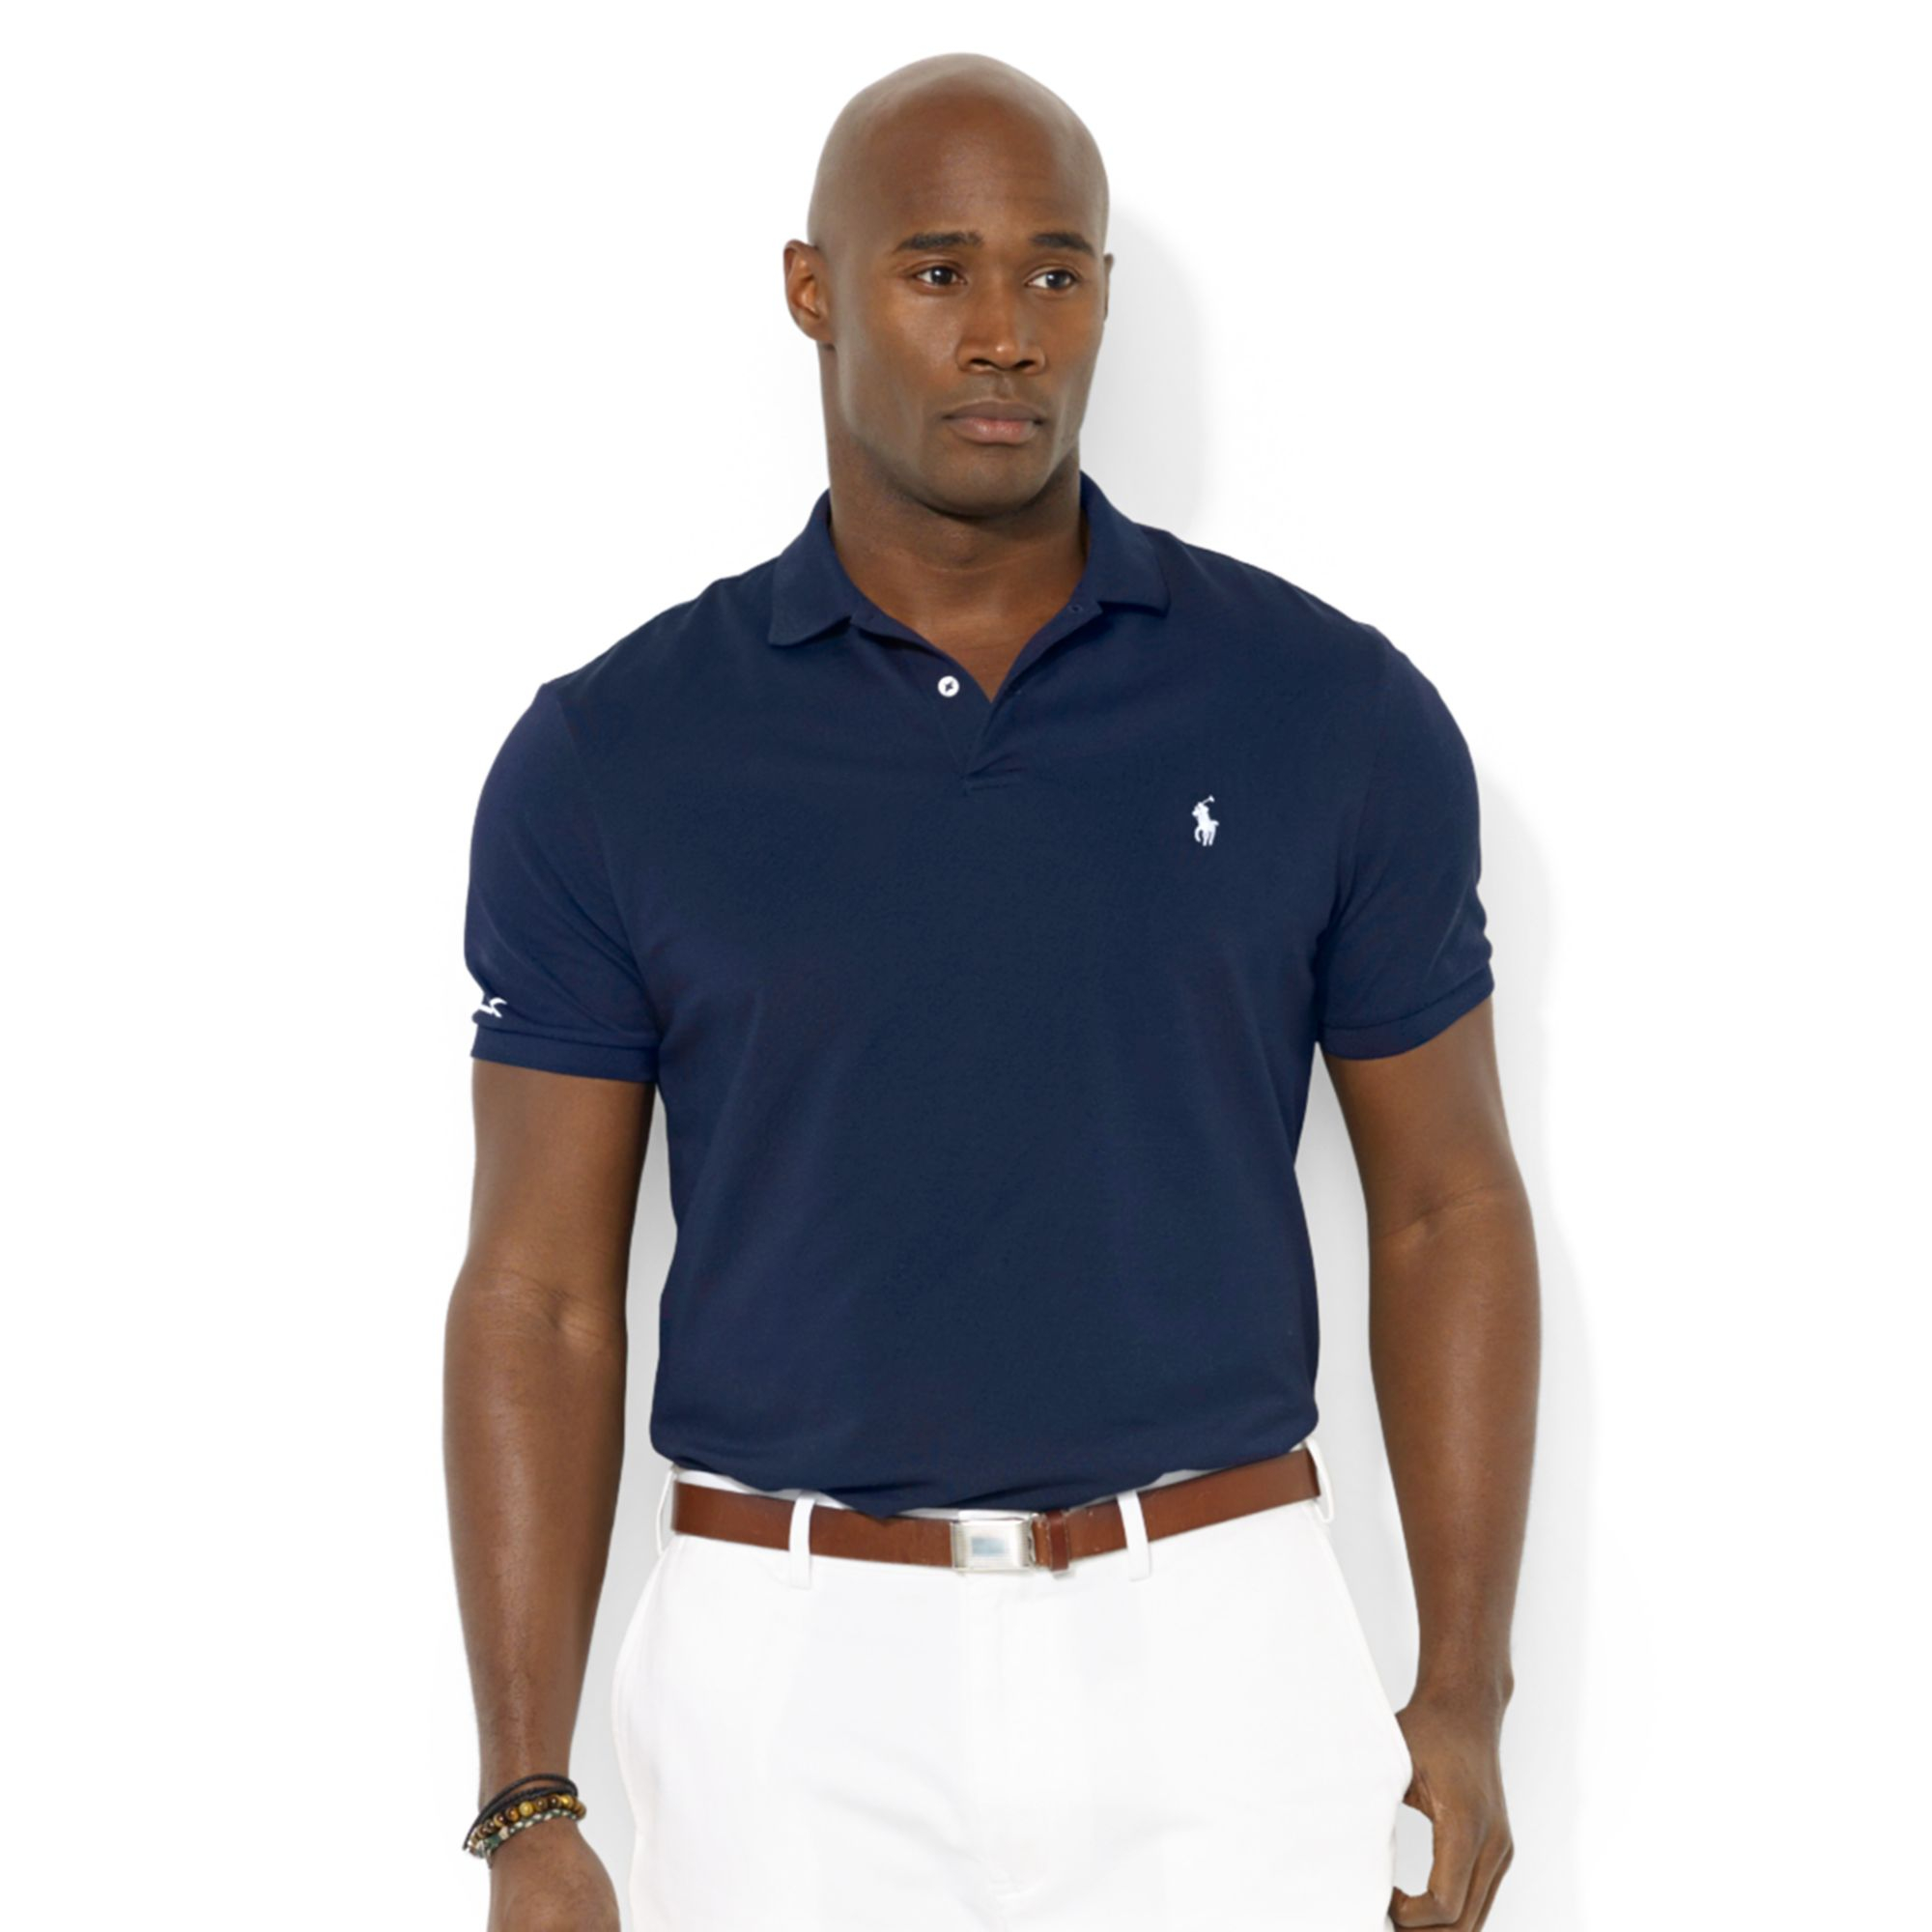 Polo ralph lauren polo rlx big and tall performance polo Man in polo shirt